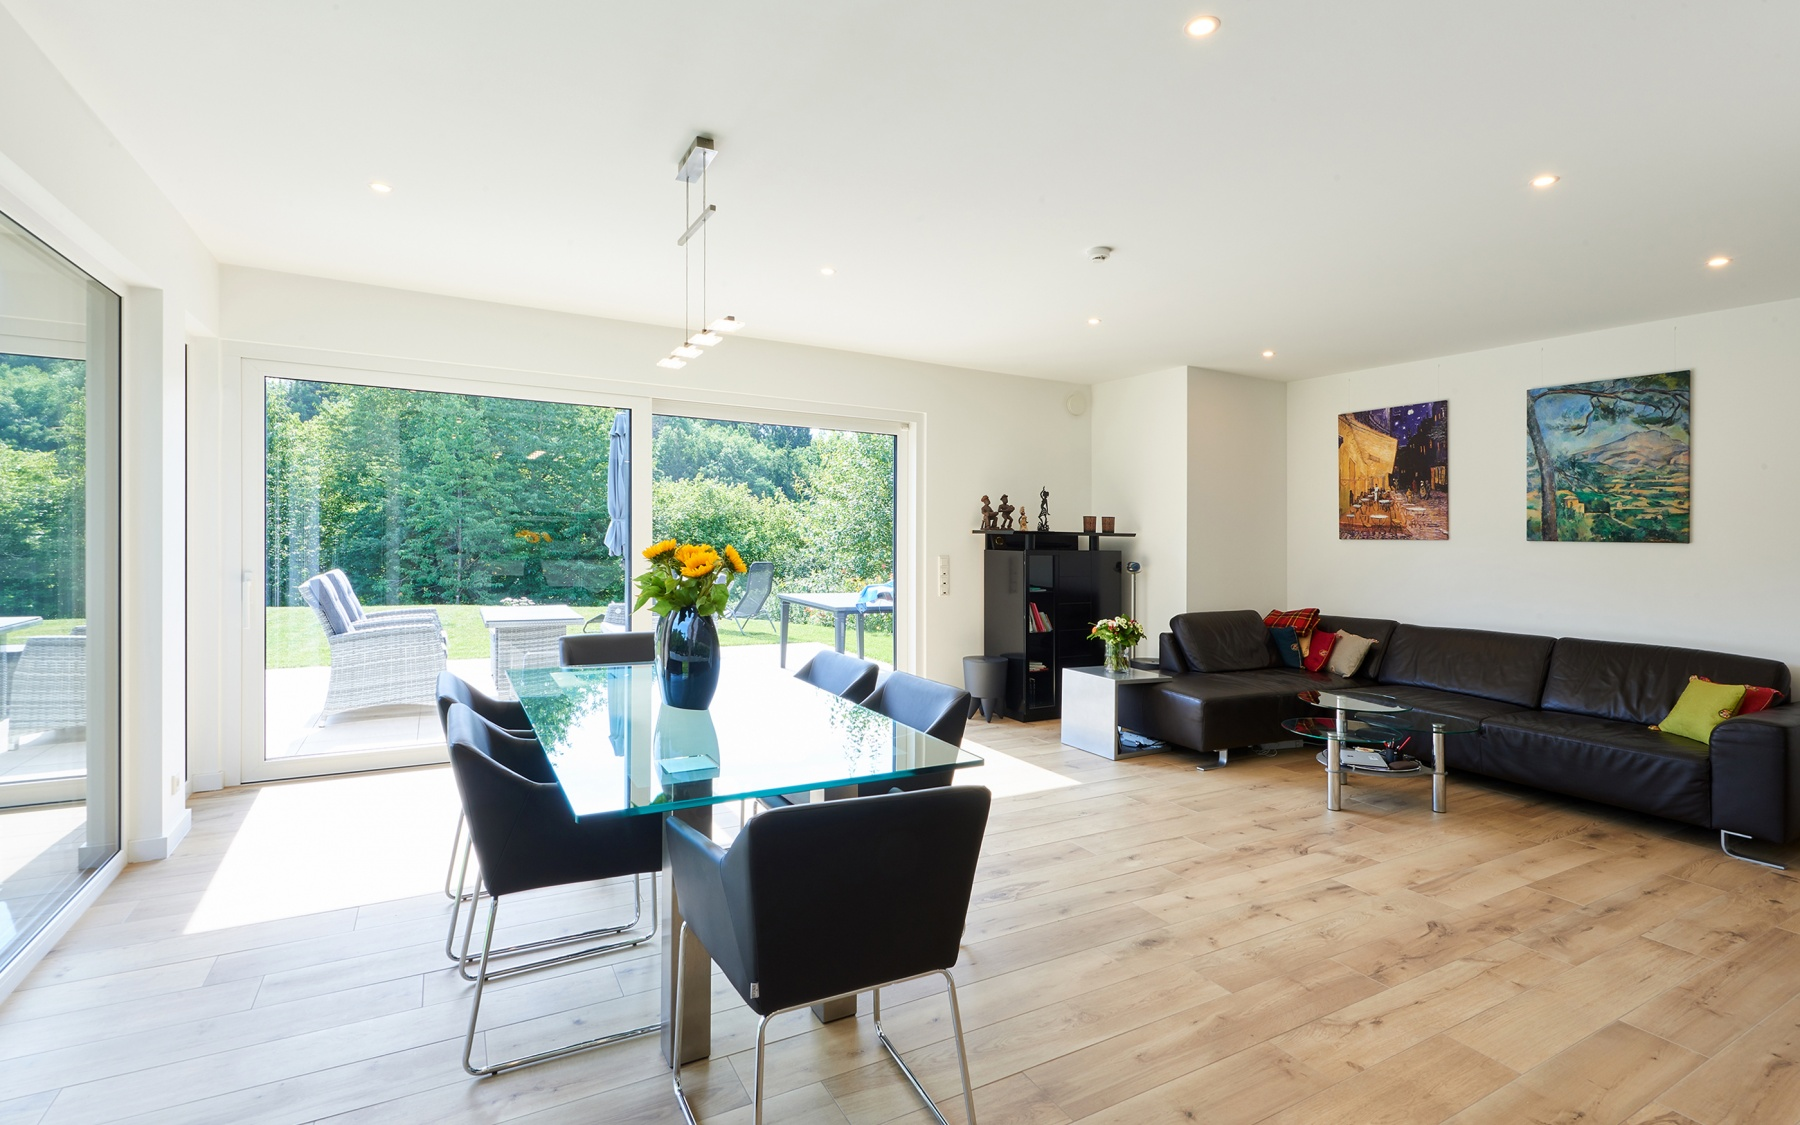 Maison Moderne A Luxembourg Kirchberg Luxembourg Sotheby S International Realty